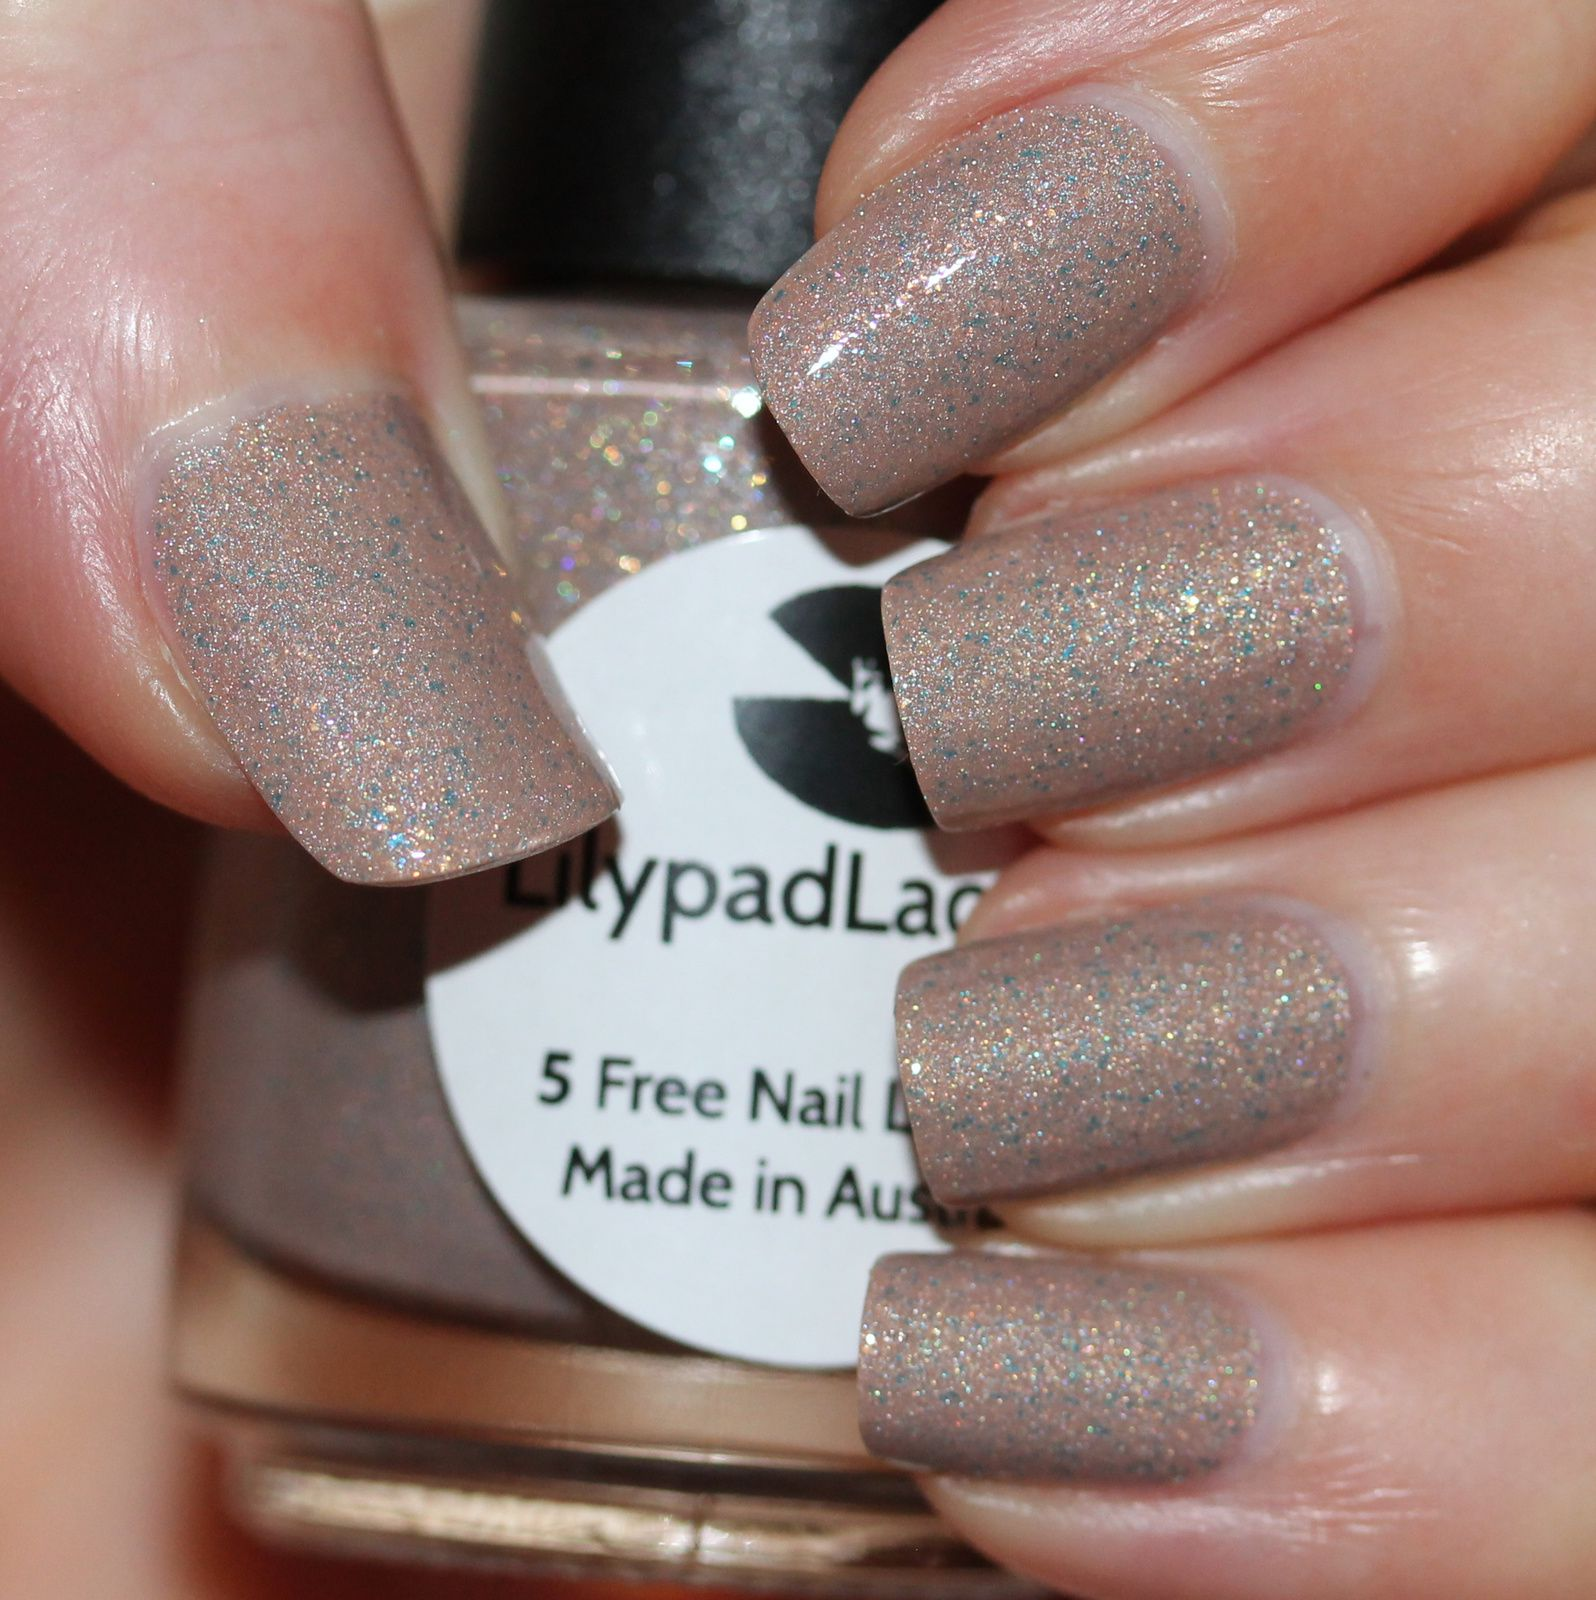 Lilypad Lacquer Free Spirit (2 coats, 1 coat of top coat)